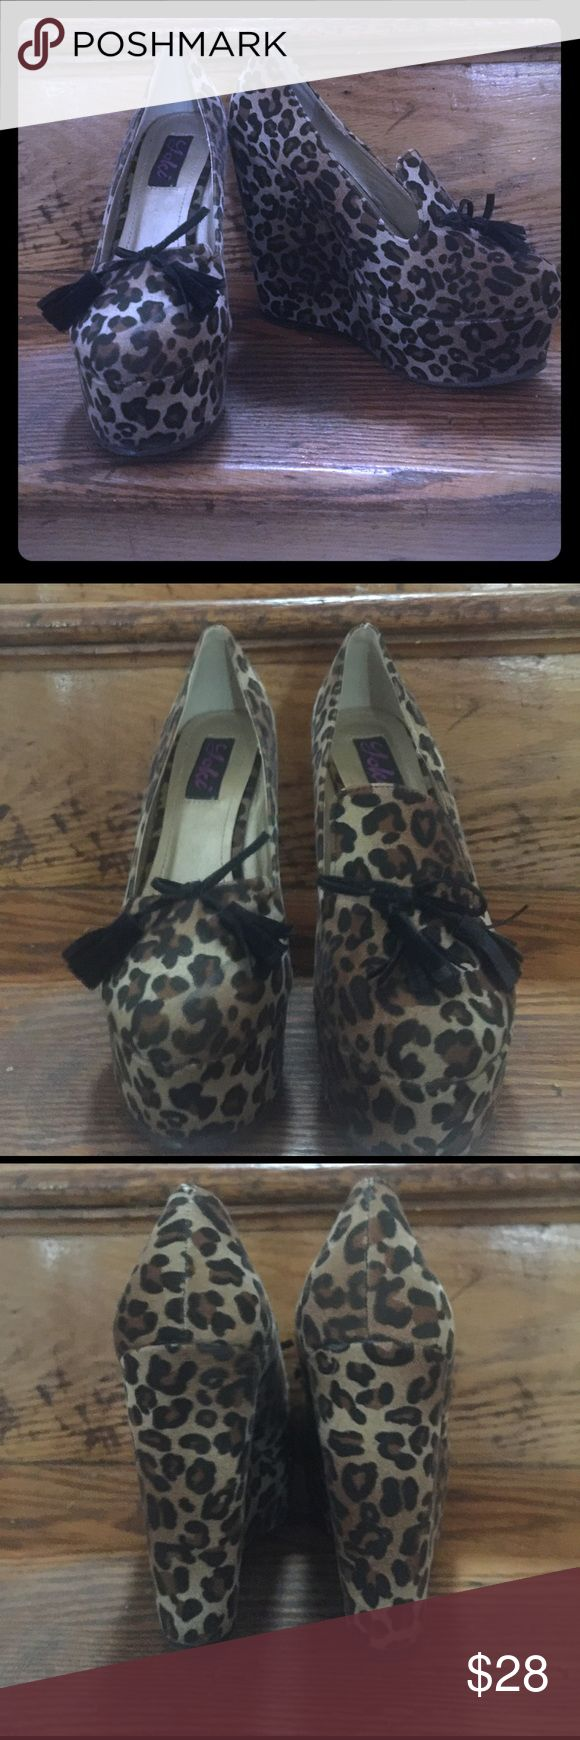 """YOKI """"Trina 28"""" leopard wedges Leopard print wedge loafers with tassel bow on front closed toe. Yoki Shoes Wedges"""